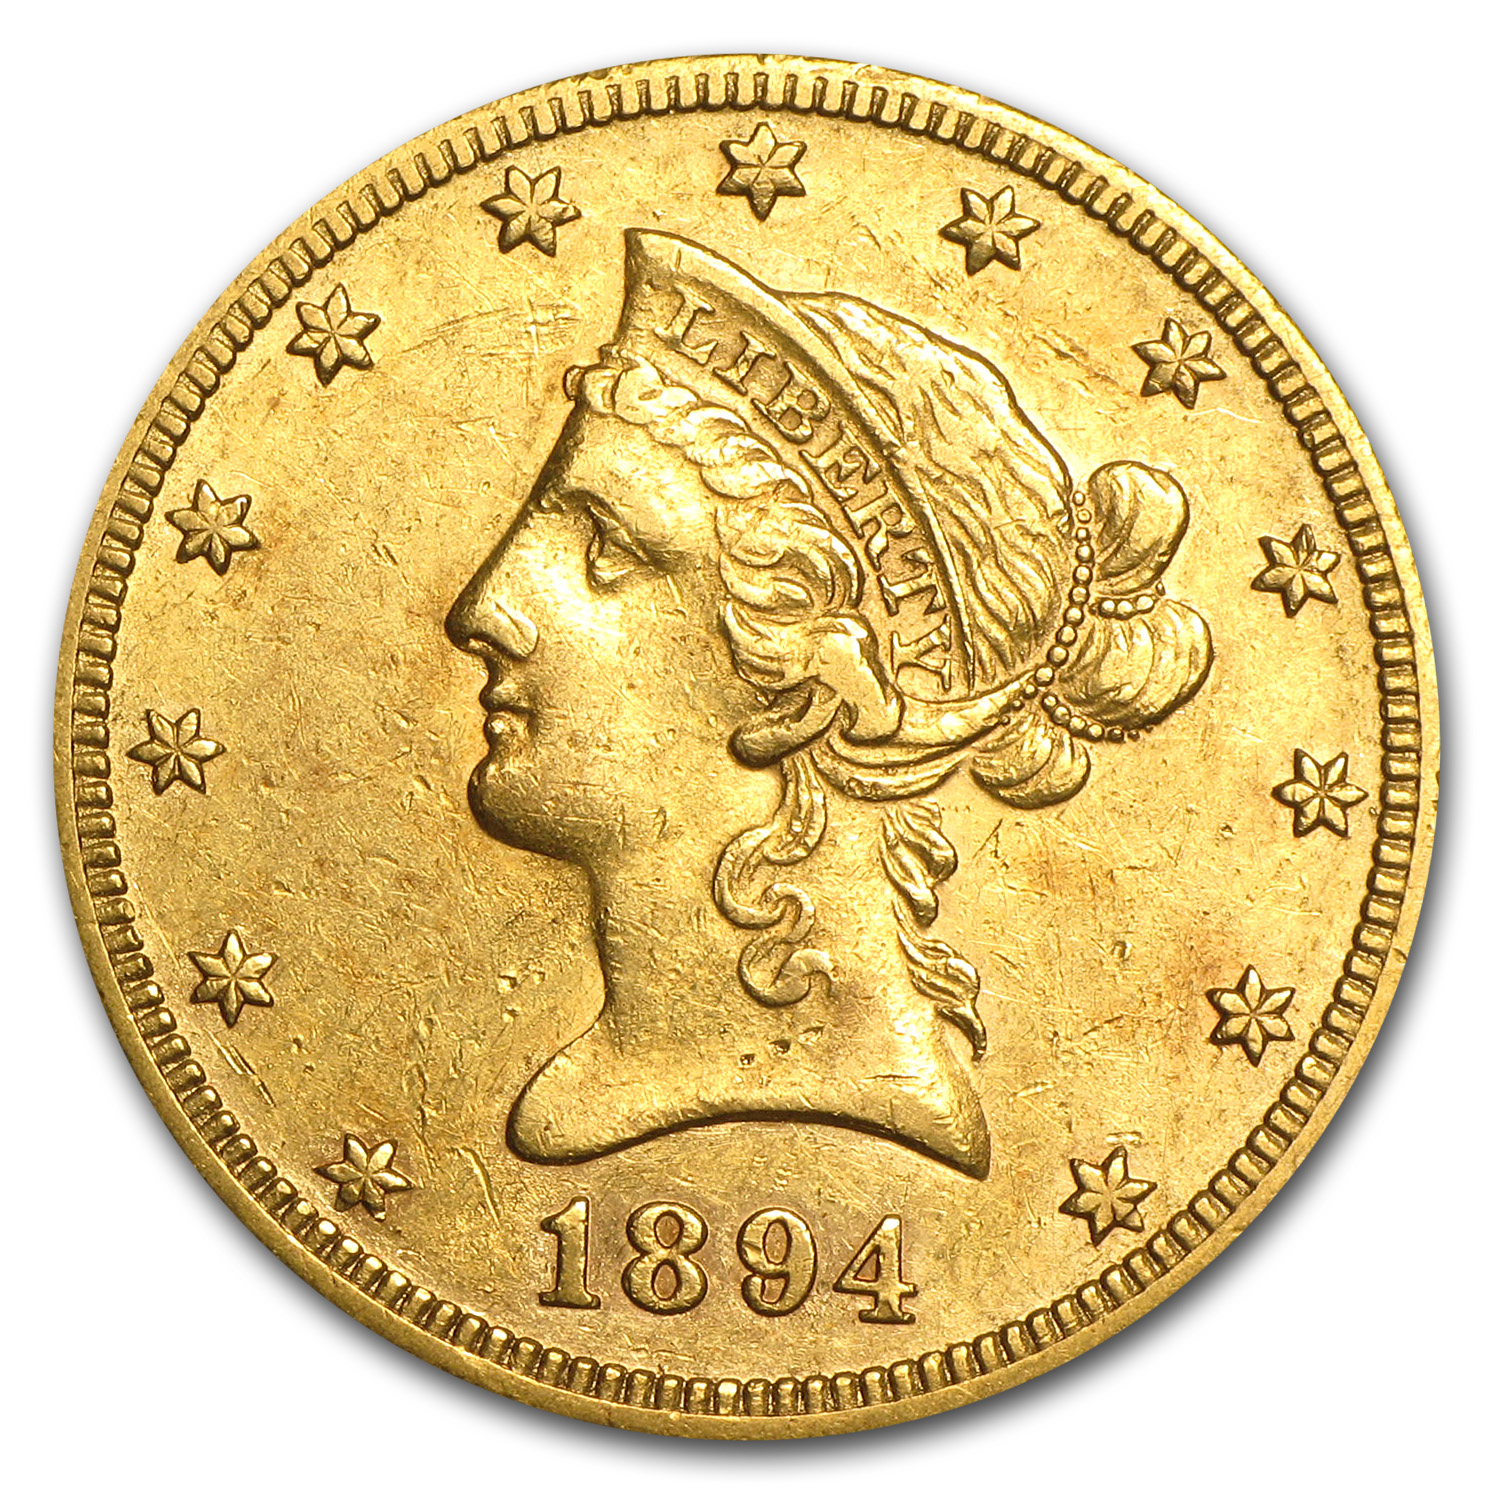 1894-O $10 Liberty Gold Eagle - Extra Fine